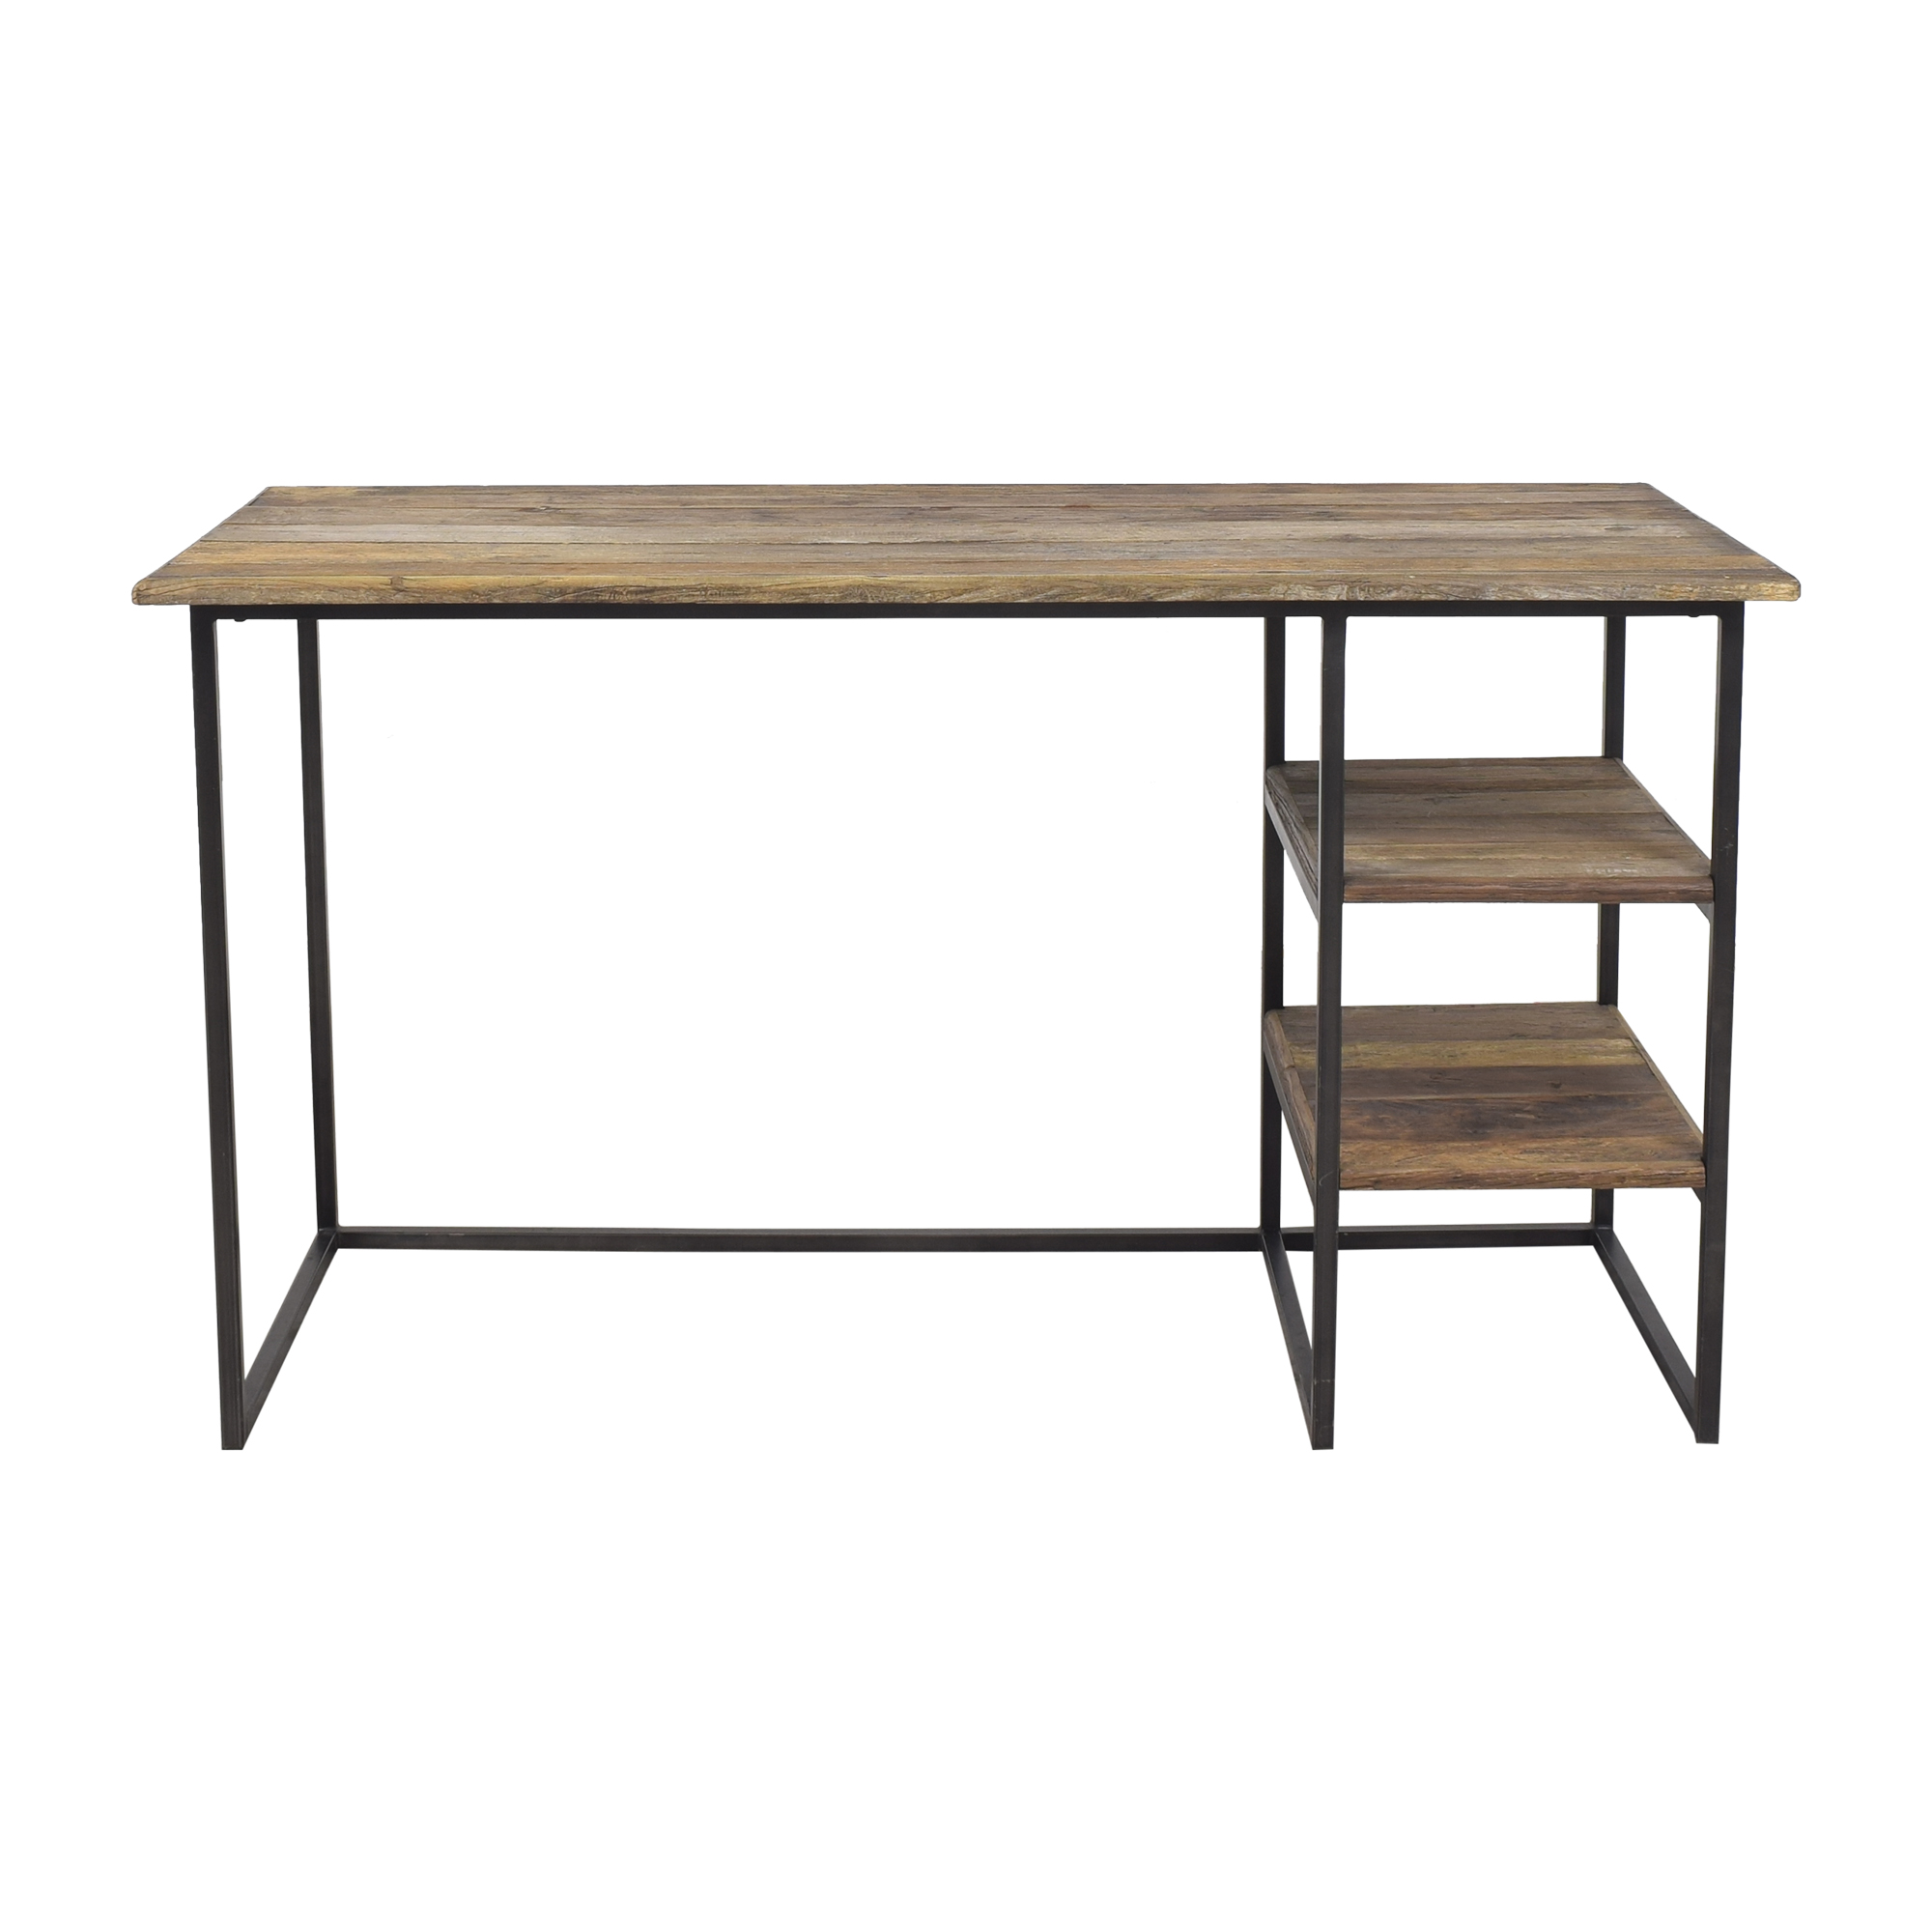 Restoration Hardware Fulton Desk / Home Office Desks